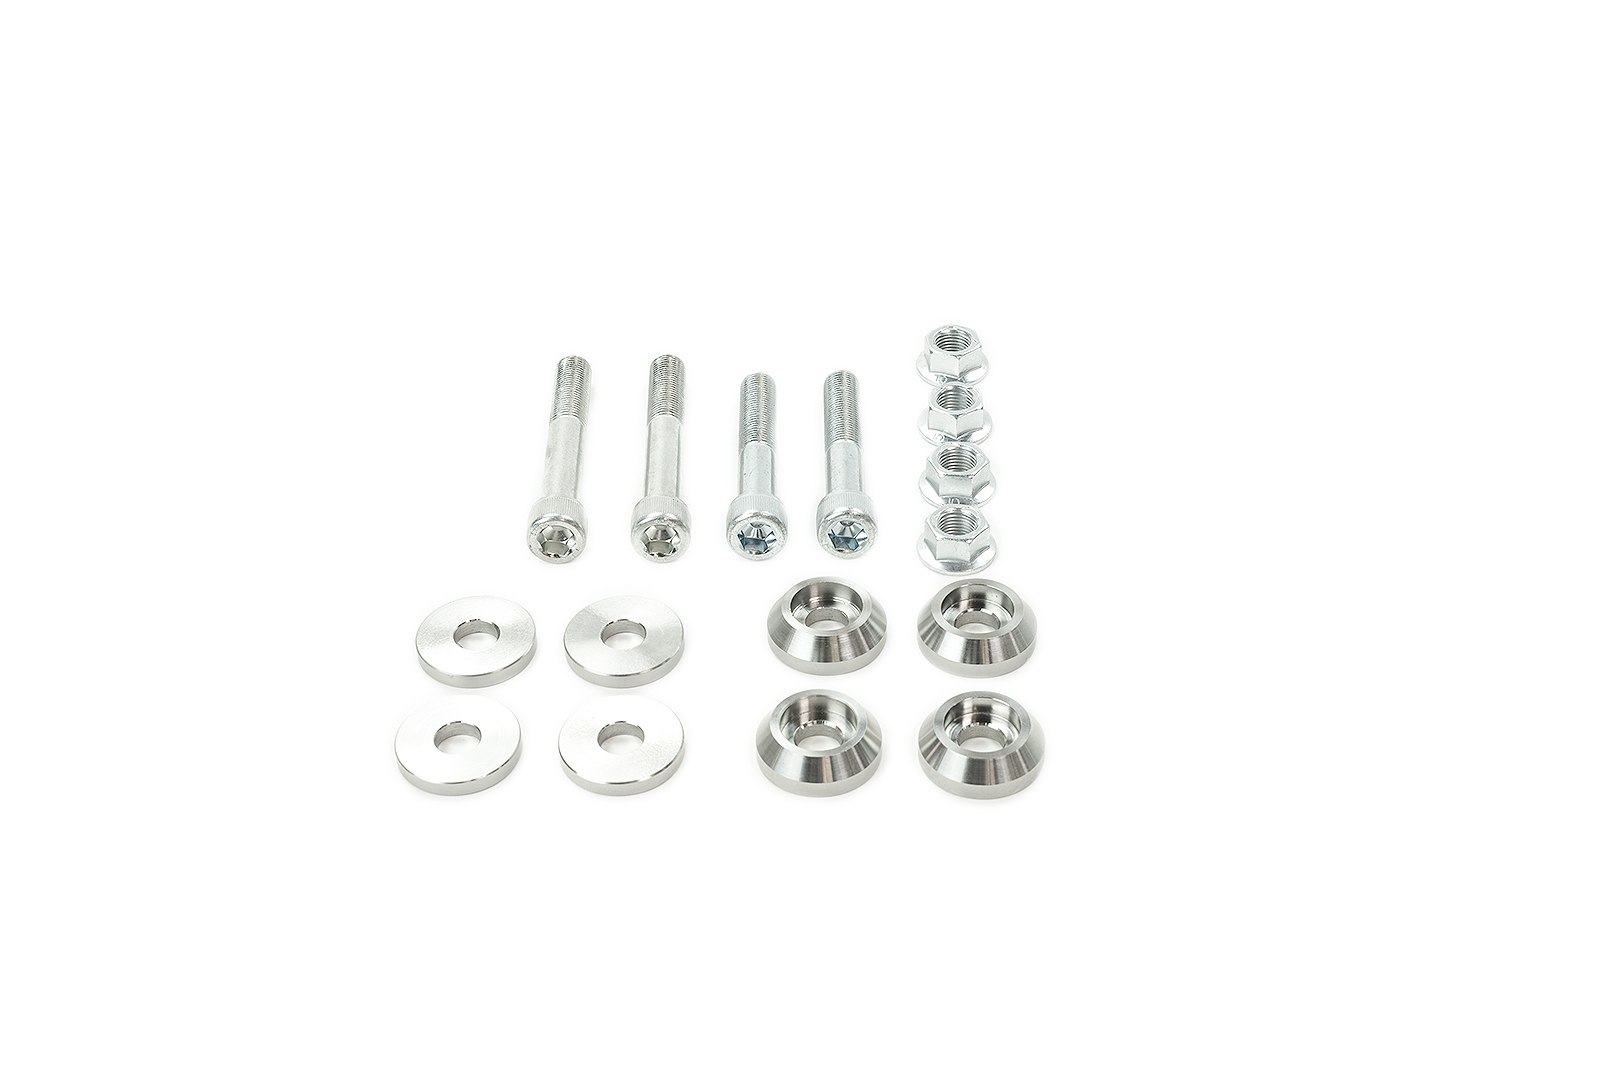 Voodoo13 Eccentric Lockout Kit For Nissan 240sx 89 94 S13